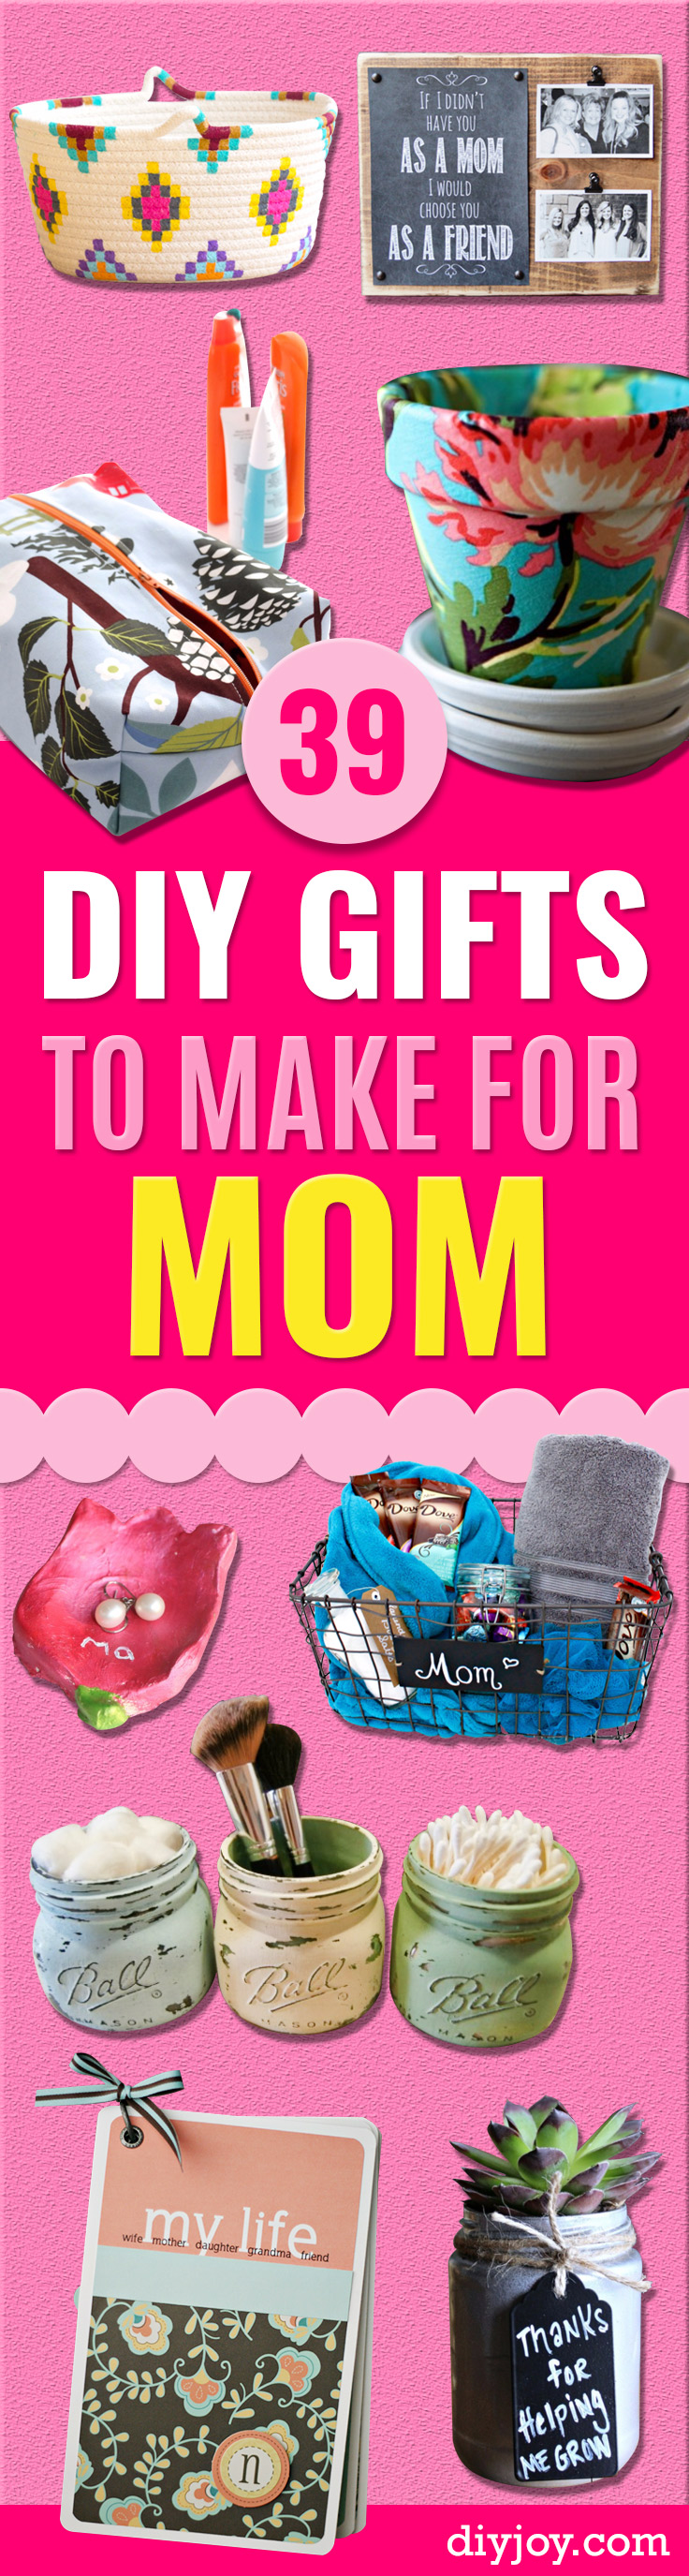 Thoughtful christmas gift ideas for mom